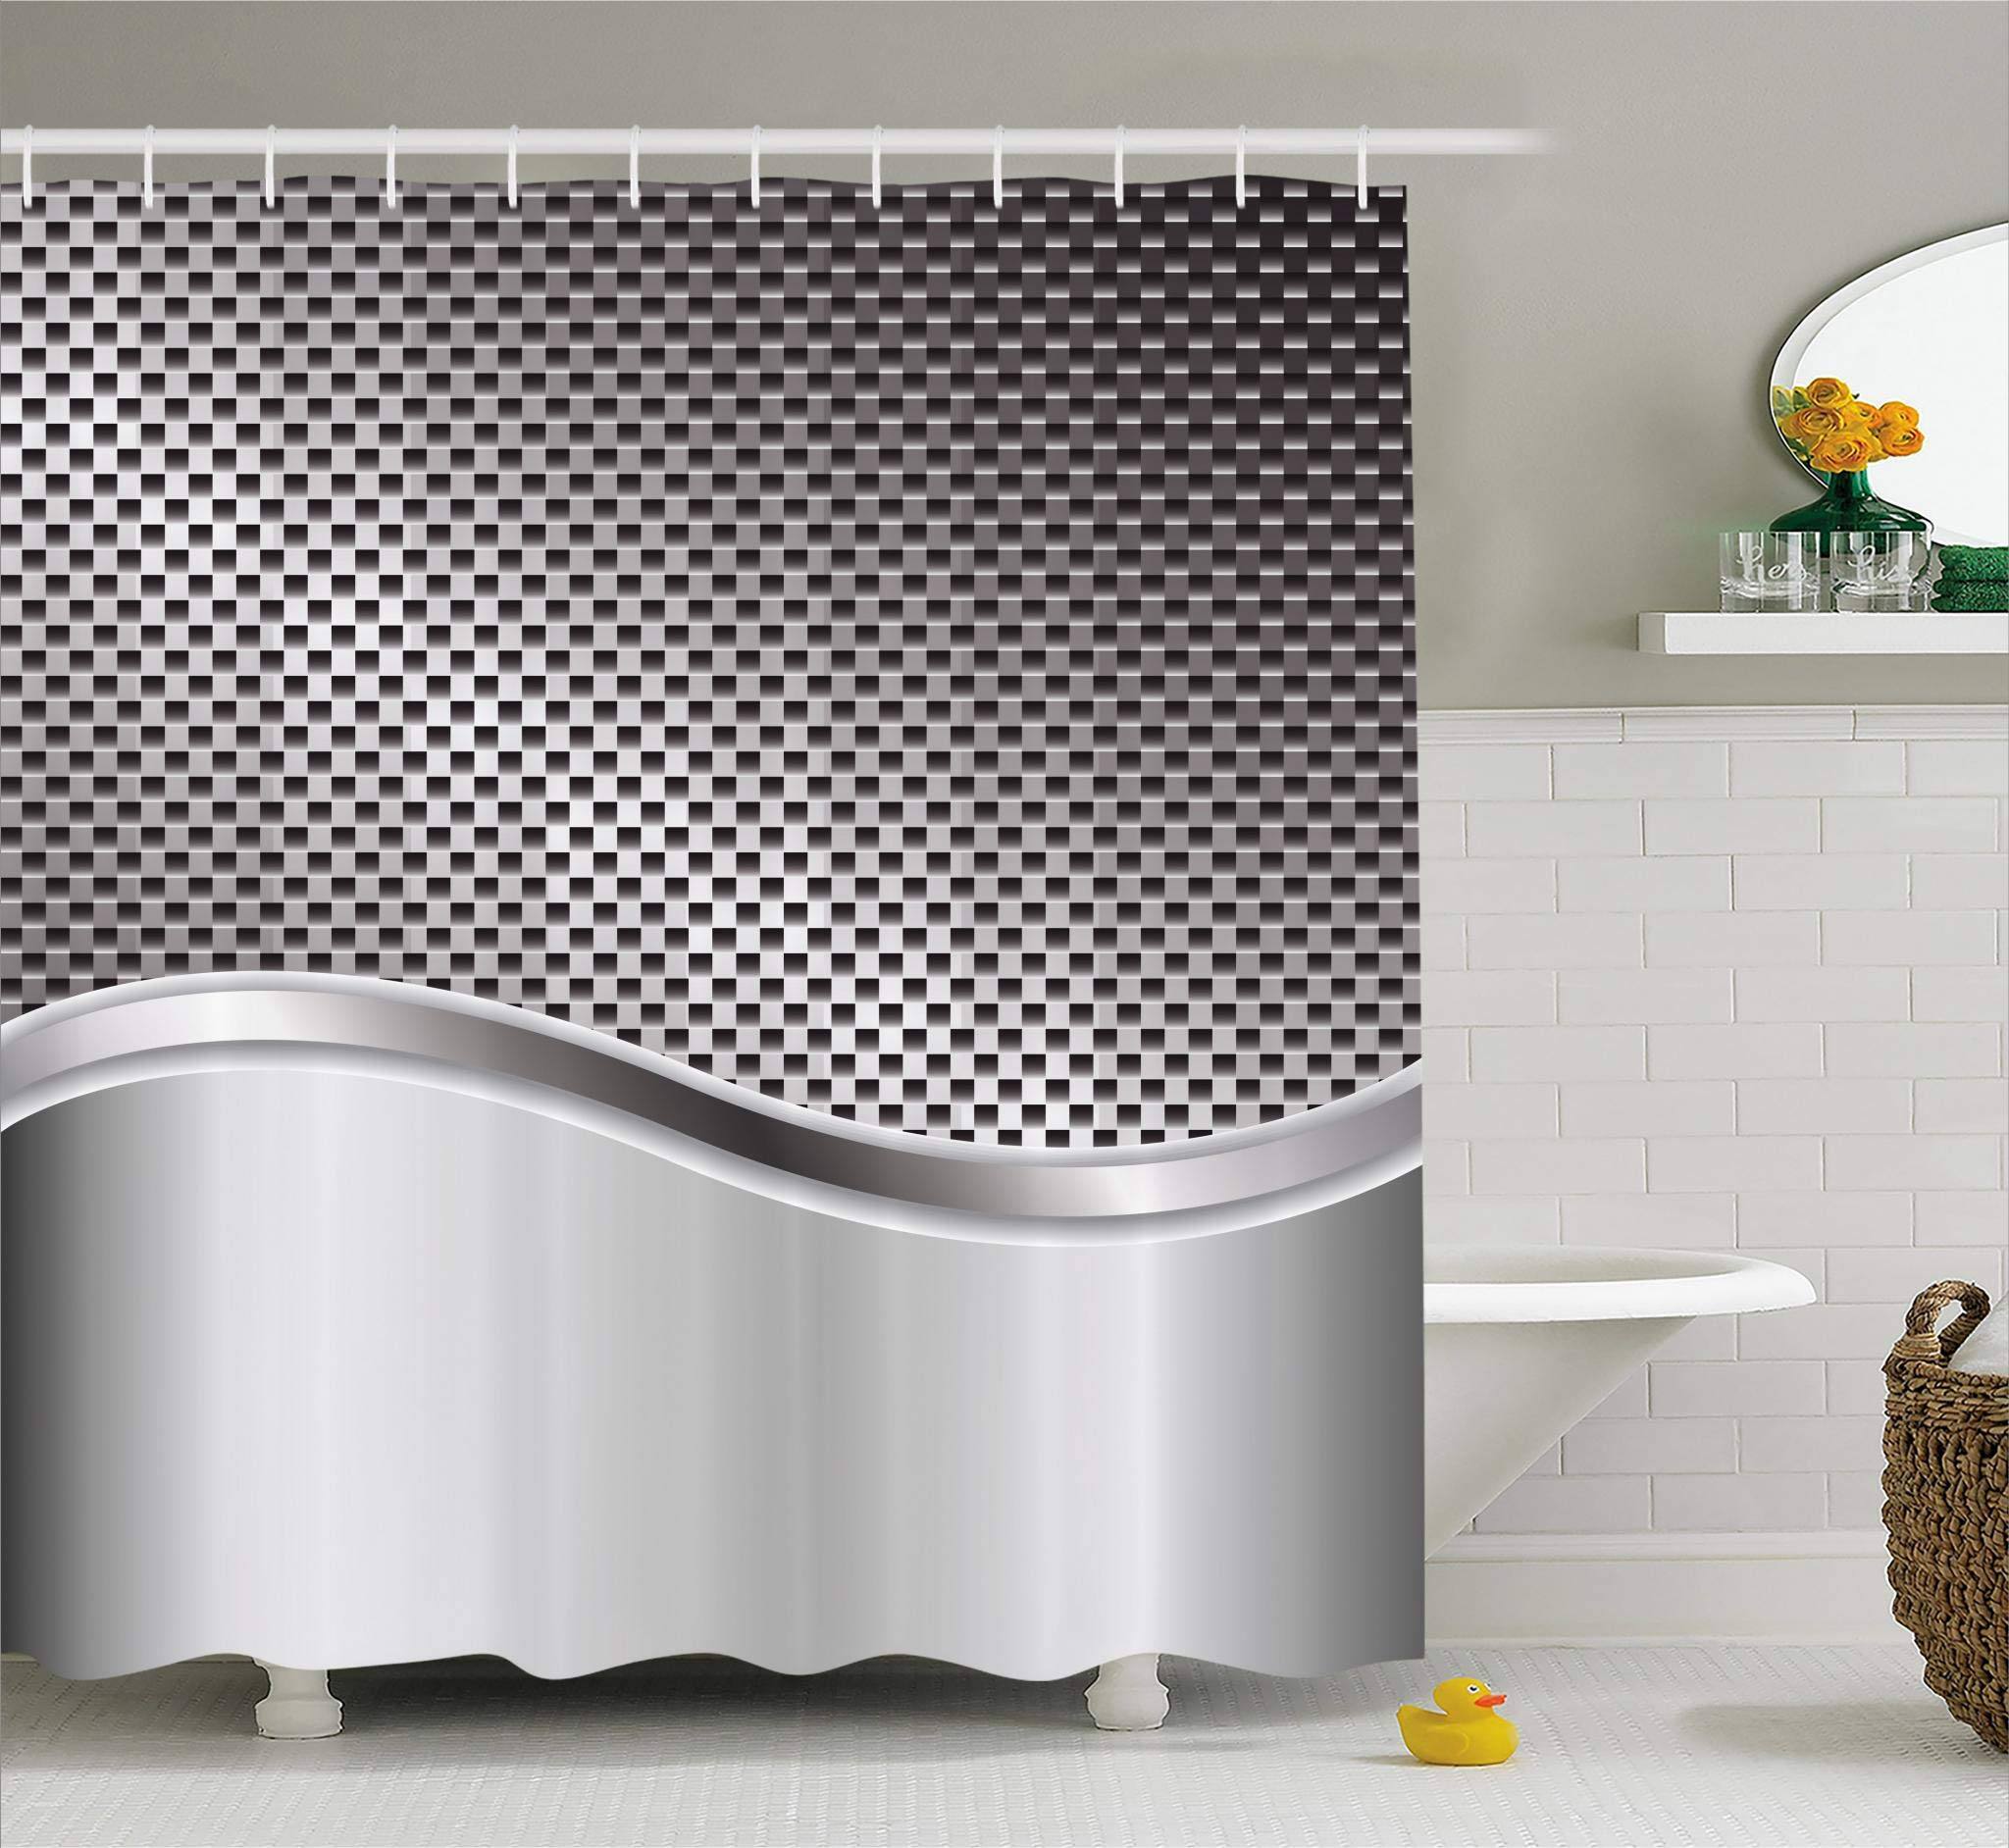 Ambesonne Grey Shower Curtain, Technology Structure with Wavy Stripe and Checkered Motif Industrial Grid Print, Fabric Bathroom Decor Set with Hooks, 75 Inches Long, Charcoal Grey